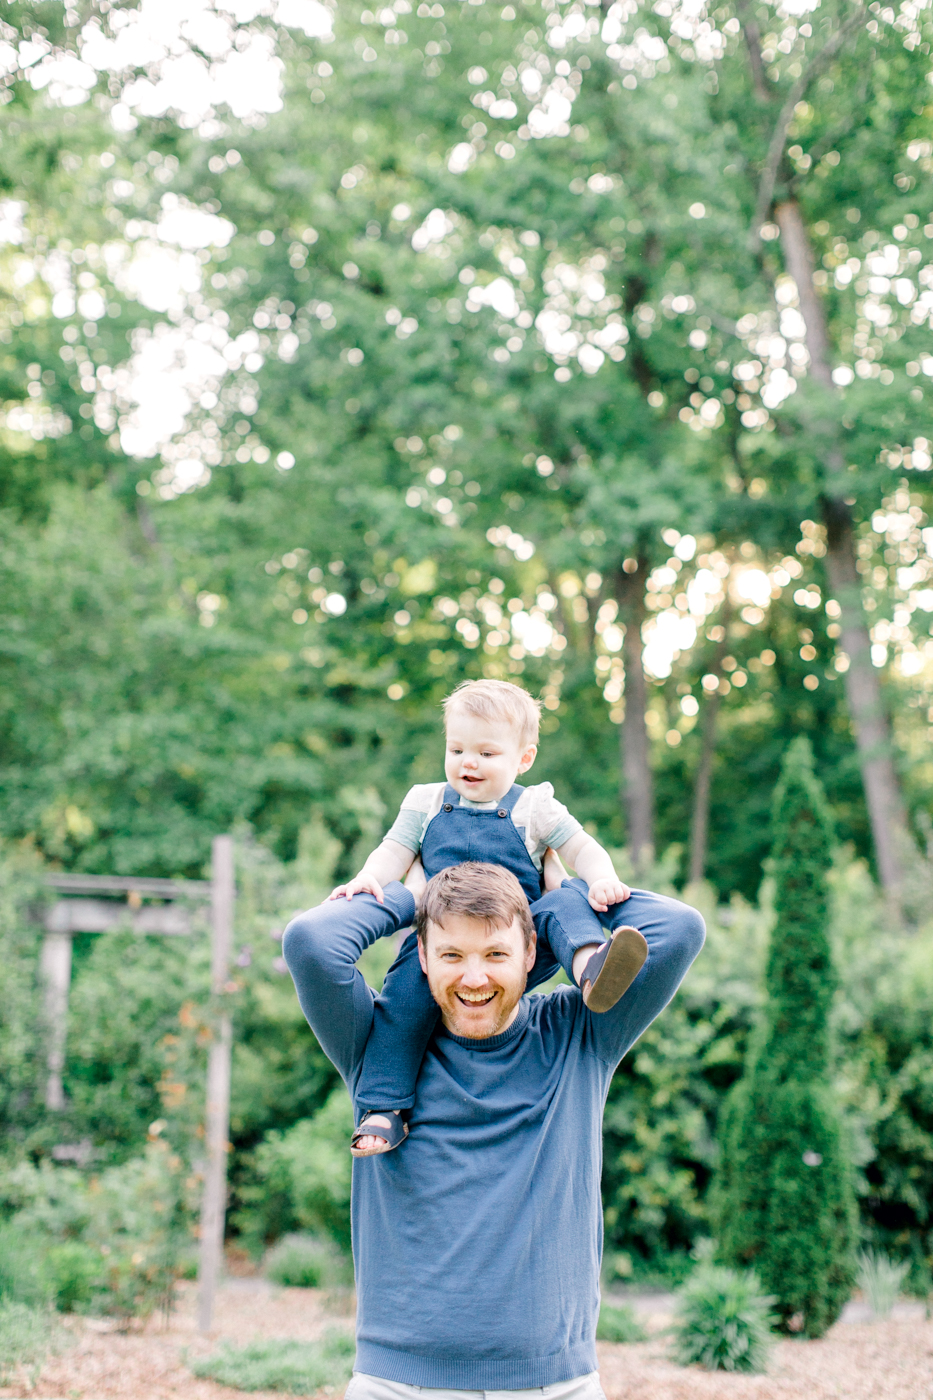 four corners photography atlanta family photographer athens family session family mini session atlanta decatur family photographer best atlanta photographer (13 of 10).jpg